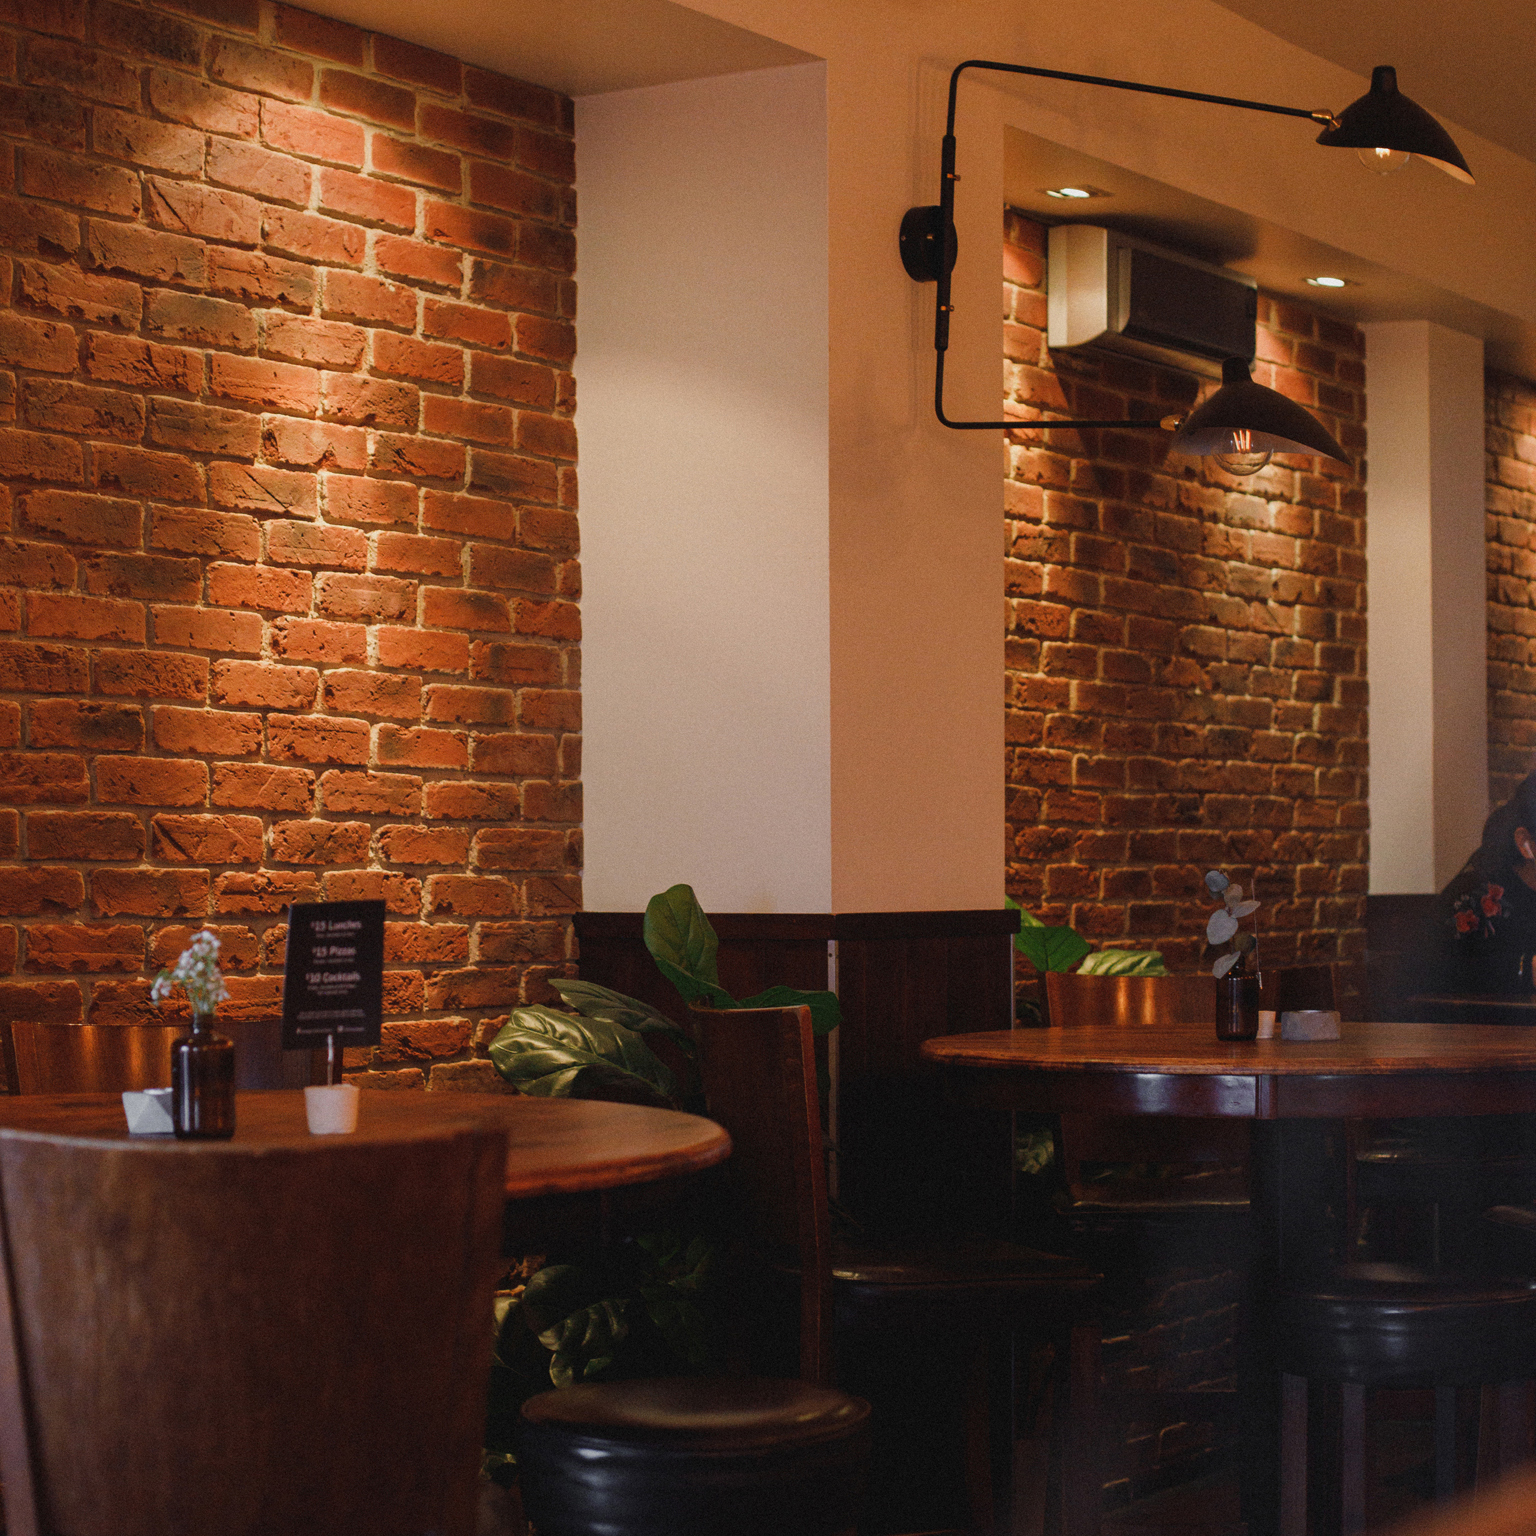 Tauranga_Bar_Fitout_Brooklyn_Food_Photography_06_web.jpg